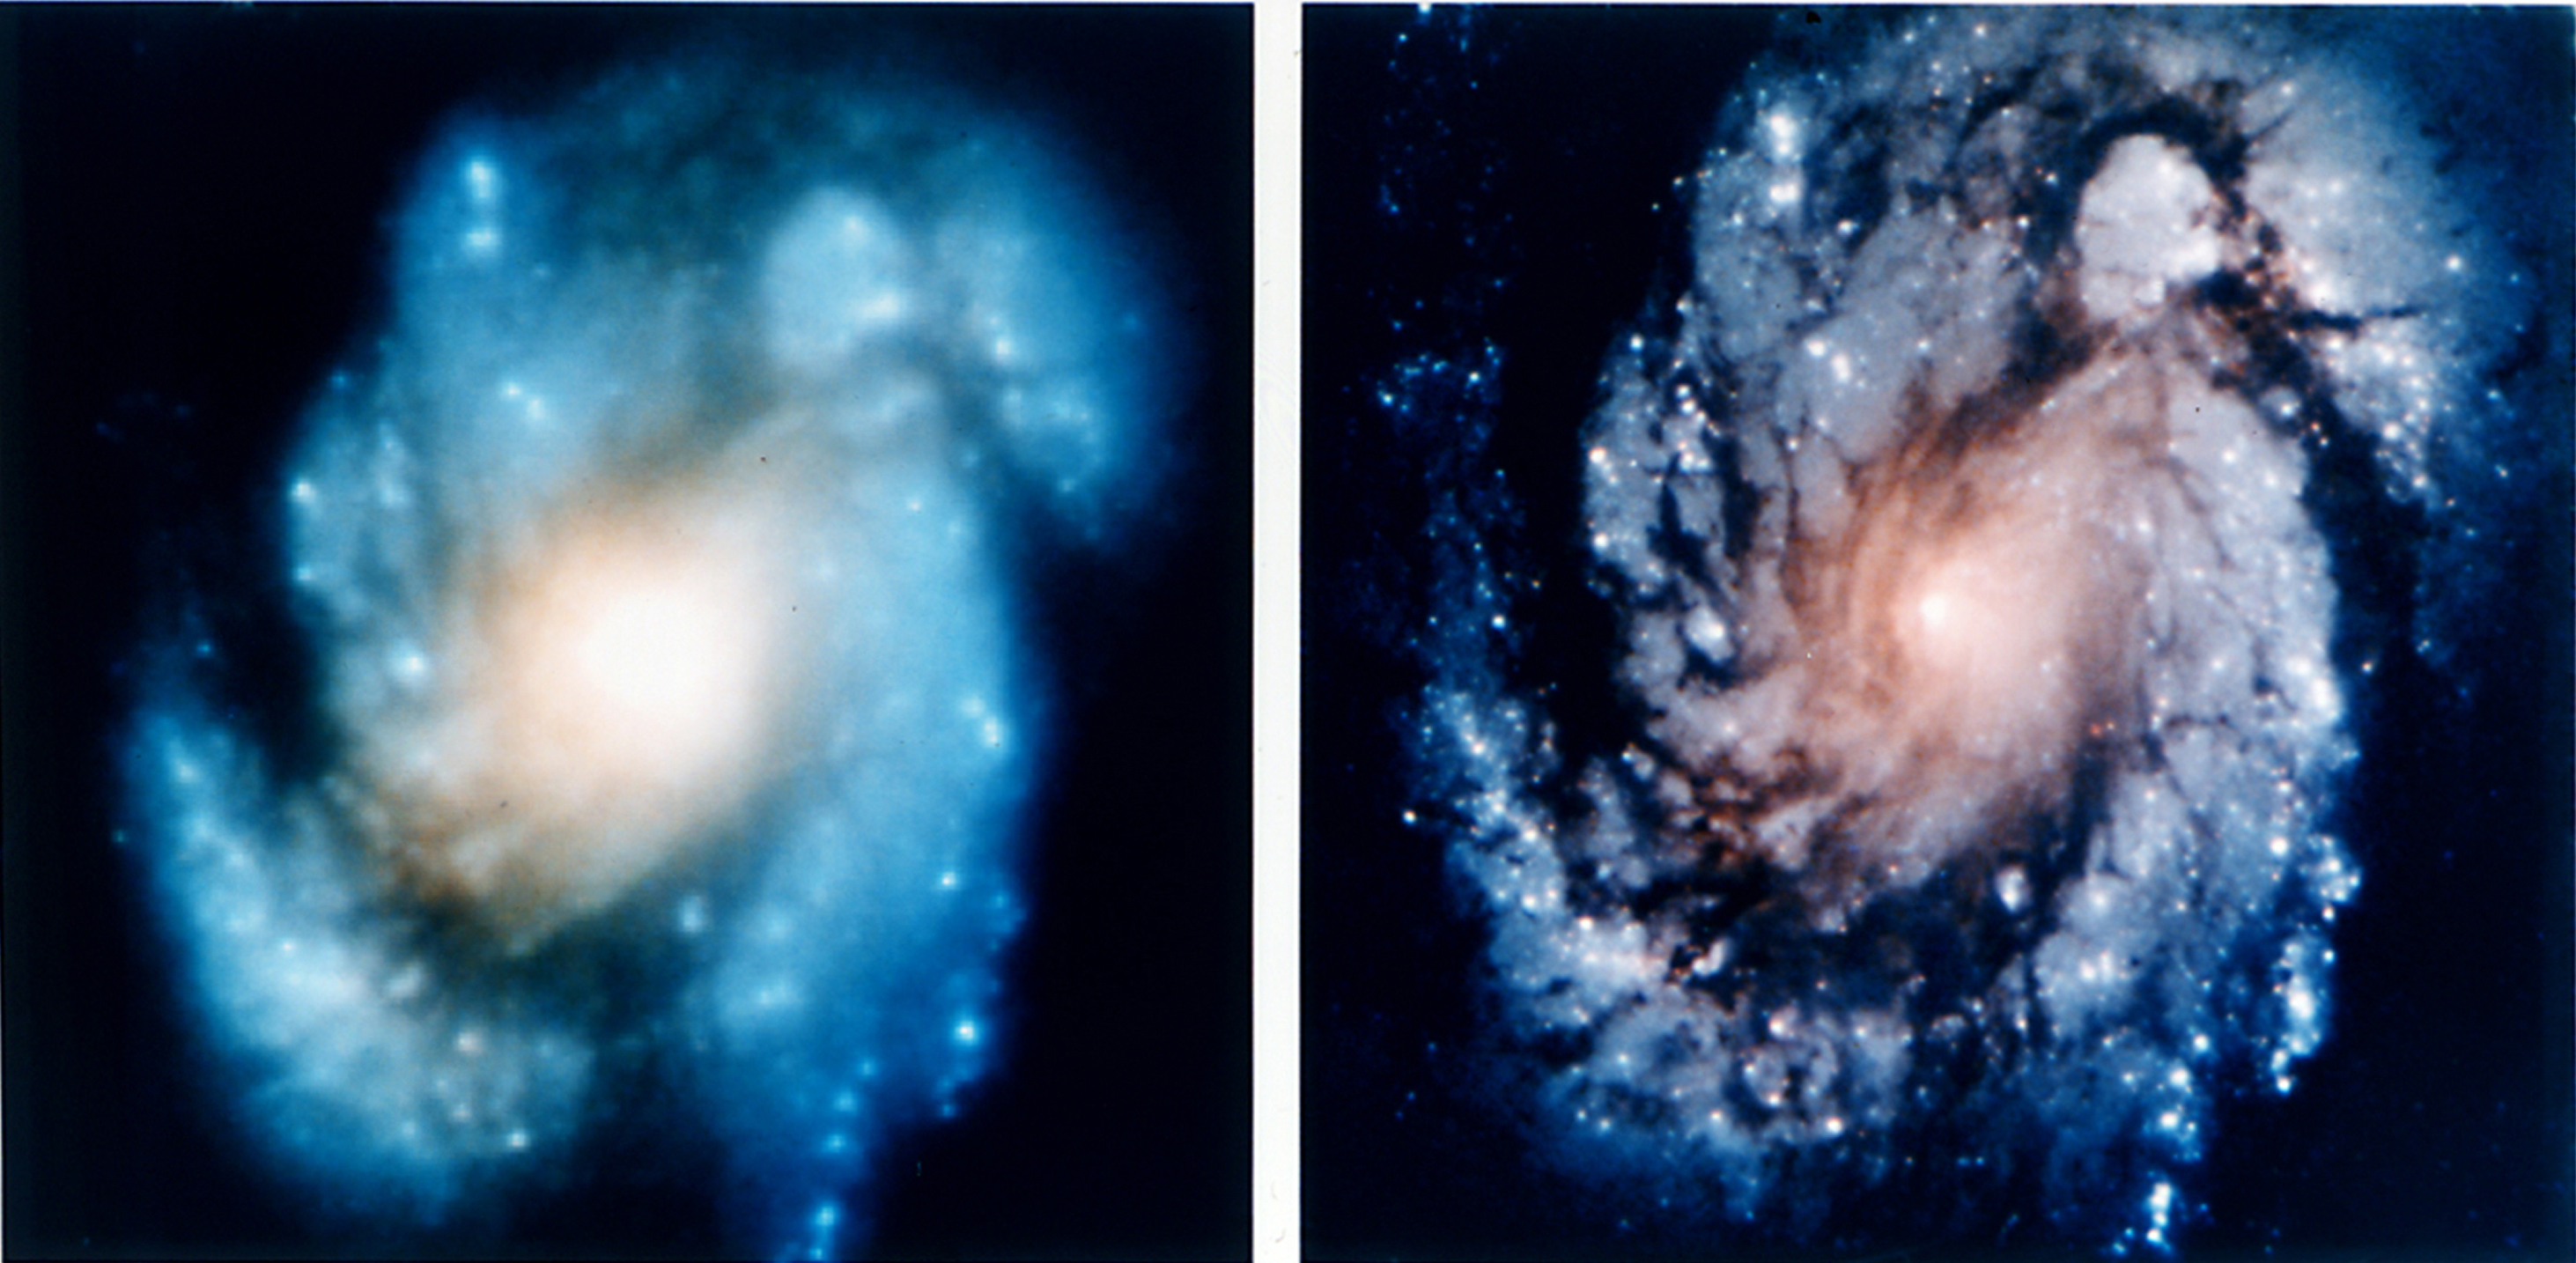 Hubble Space Telescope WF/PC and WFPC2 images (1,860,603 bytes)